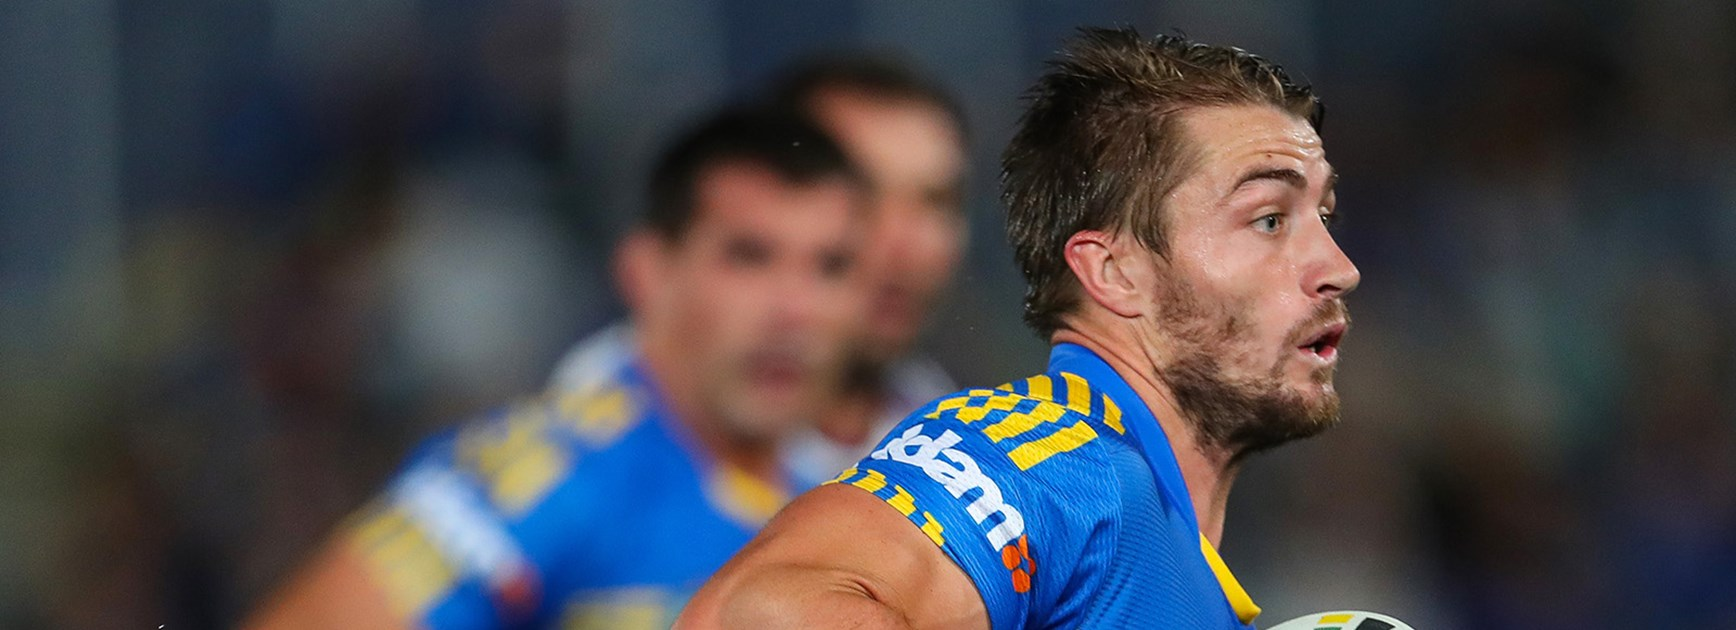 Kieran Foran made his return in Round 11 against the Storm.